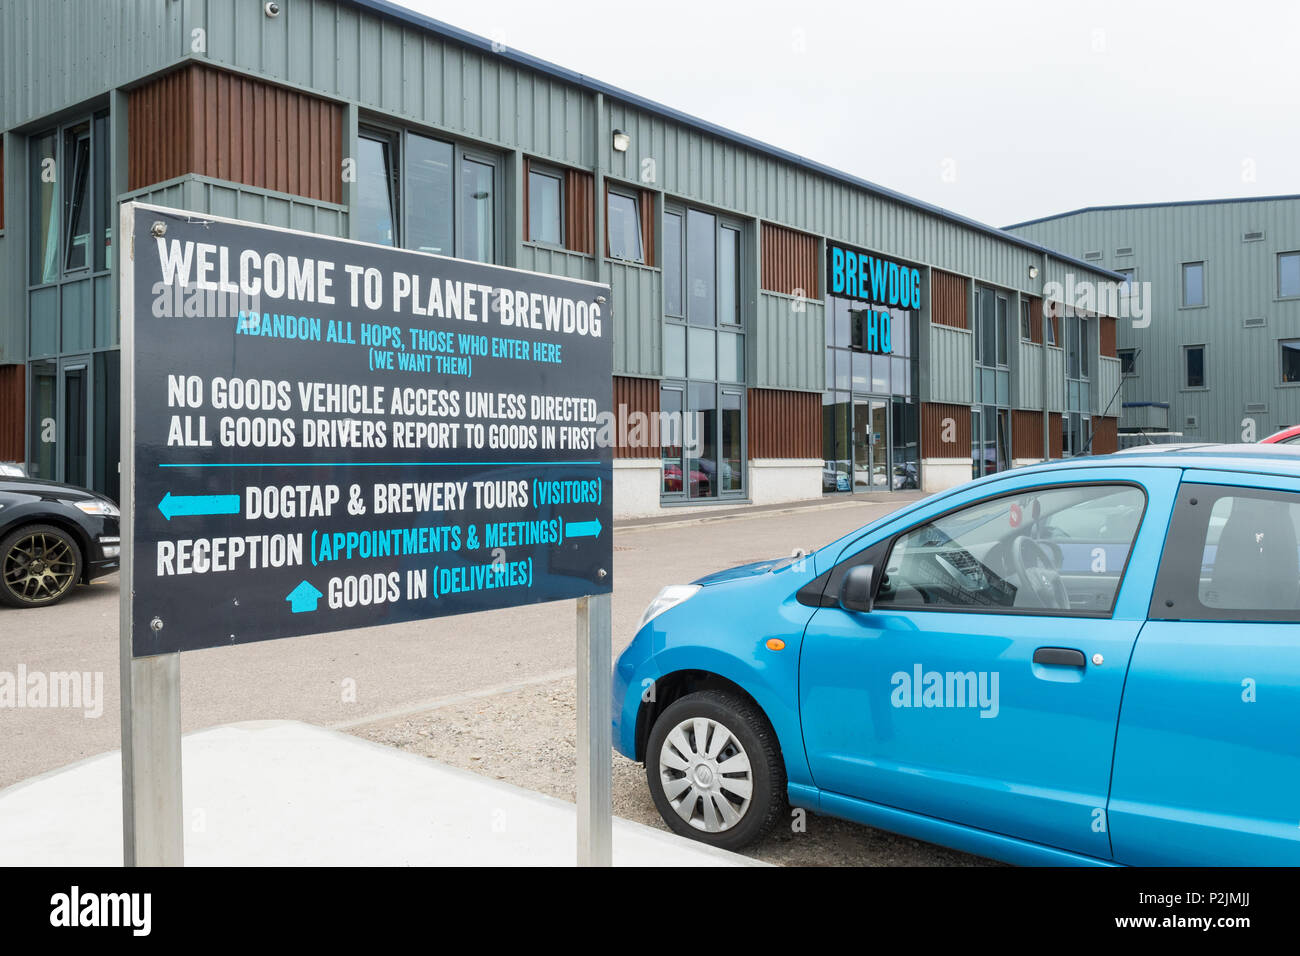 Welcome to planet brewdog sign outside BrewDog  HQ head office, Ellon, Aberdeenshire, Scotland, UK - Stock Image